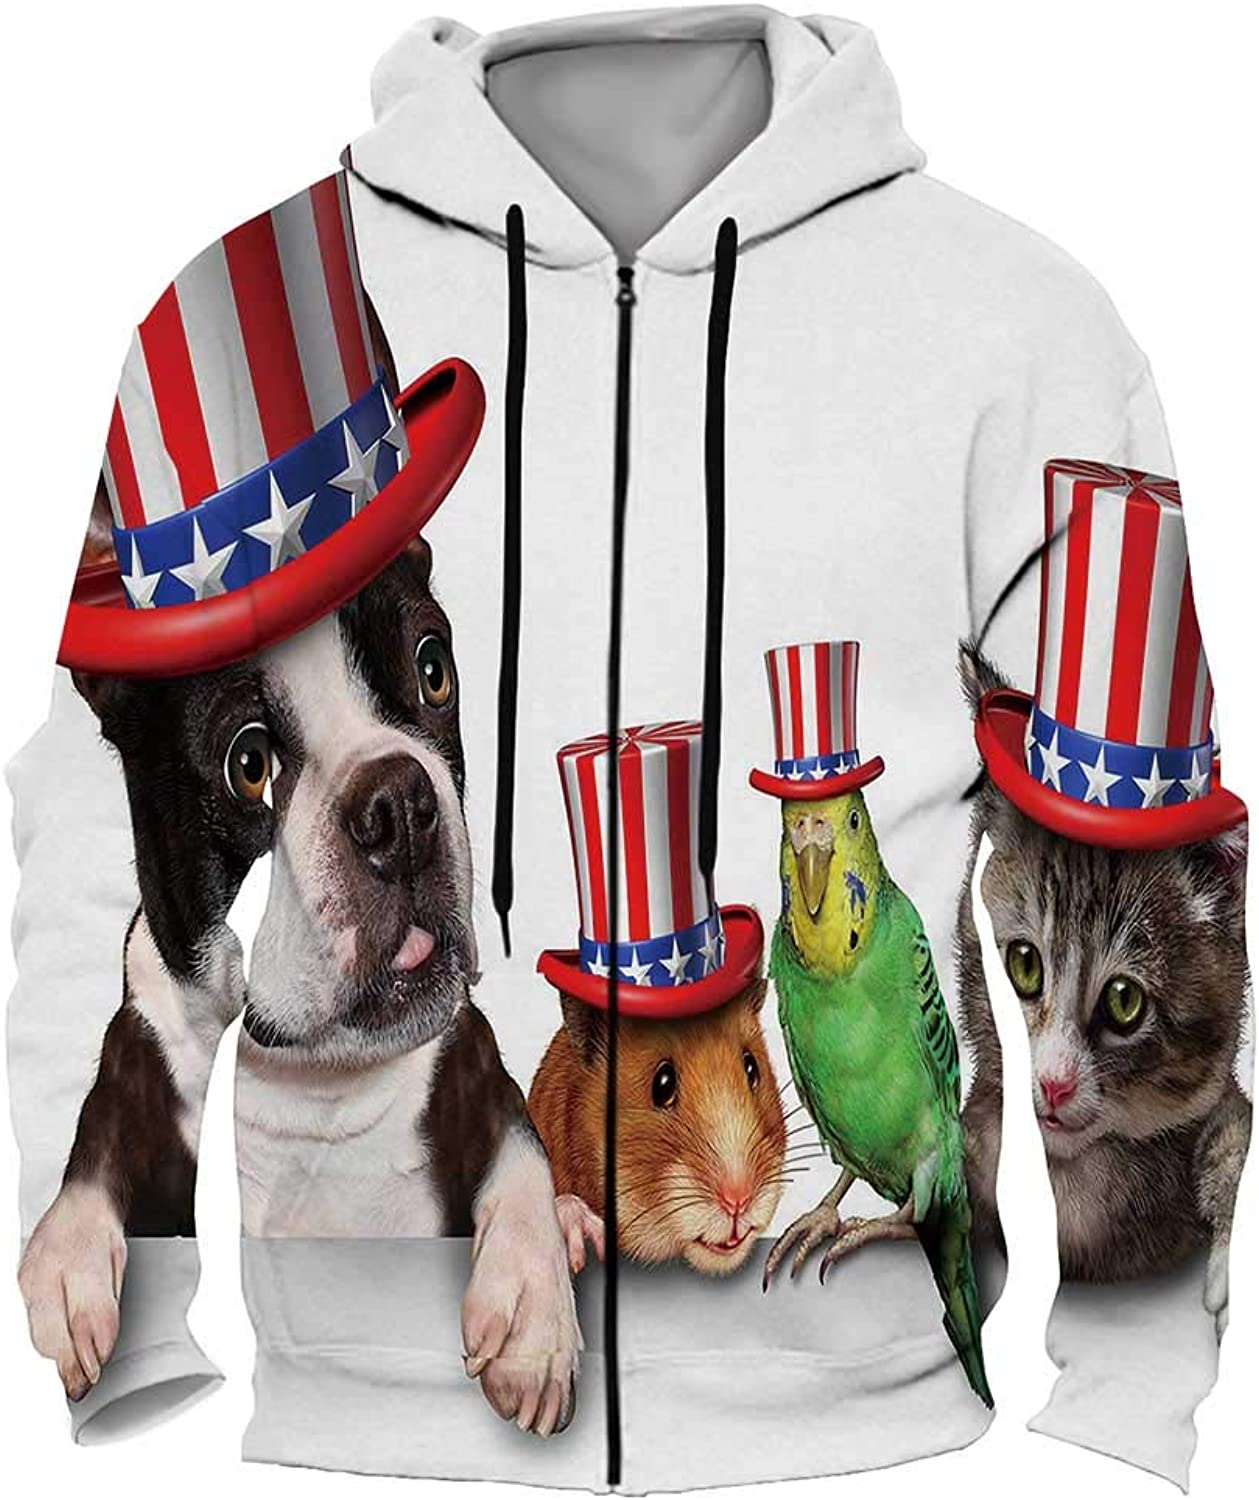 Day Pets Celebrating The United States Fourth of July Holiday with a Dog cat Bird and Hamster Wearin